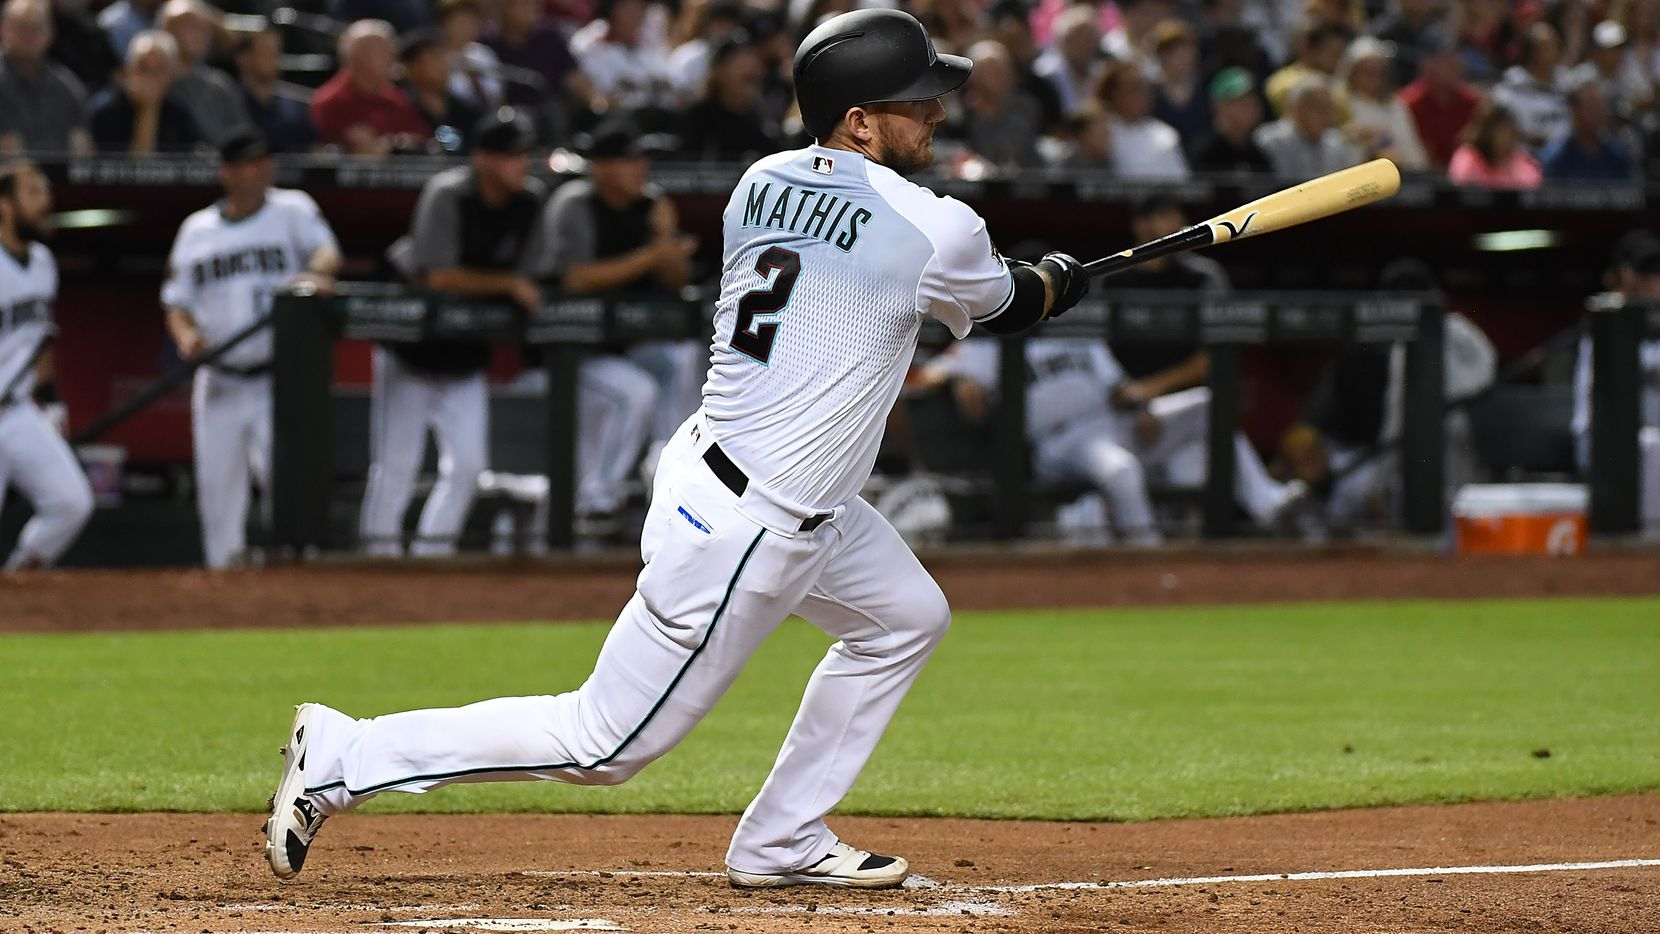 PHOENIX, AZ - SEPTEMBER 04:  Jeff Mathis #2 of the Arizona Diamondbacks follows through on a swing against the San Diego Padres at Chase Field on September 4, 2018 in Phoenix, Arizona.  (Photo by Norm Hall/Getty Images)